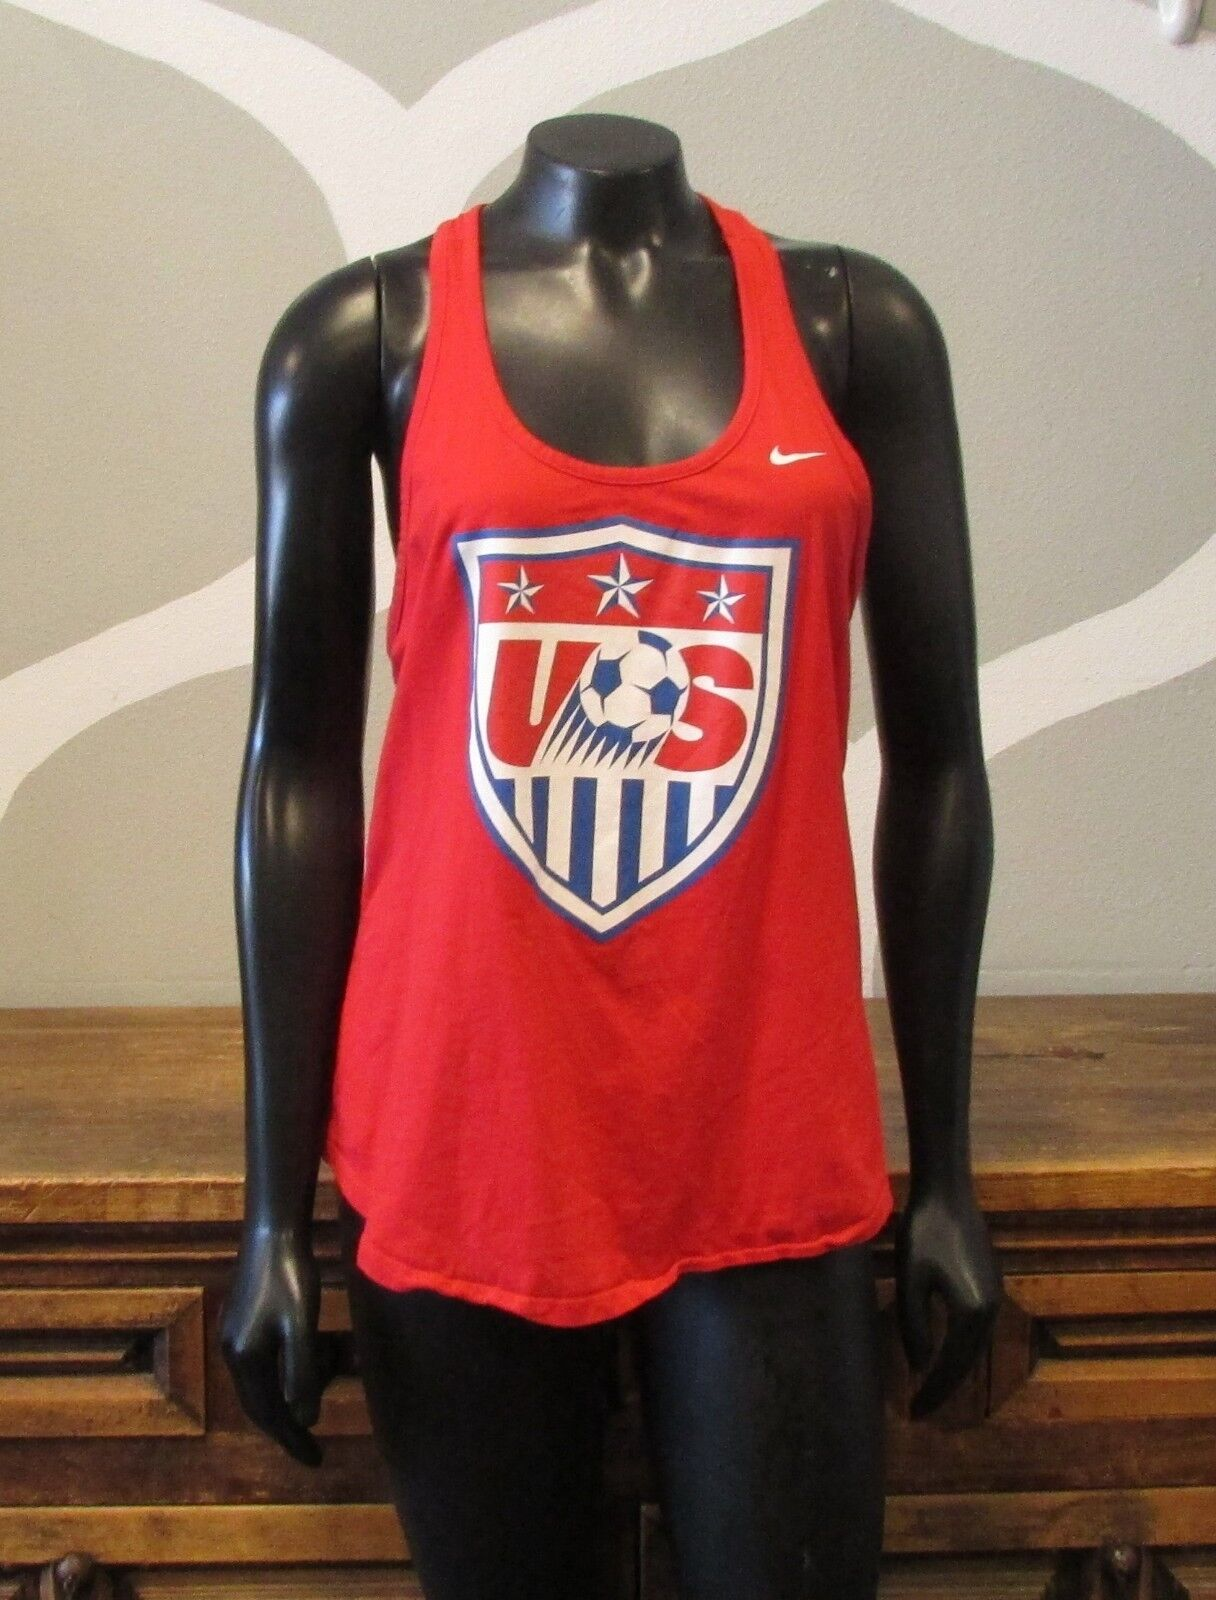 NIKE Red White Blue USA Soccer Racer Back Athletic Tank Top - Large